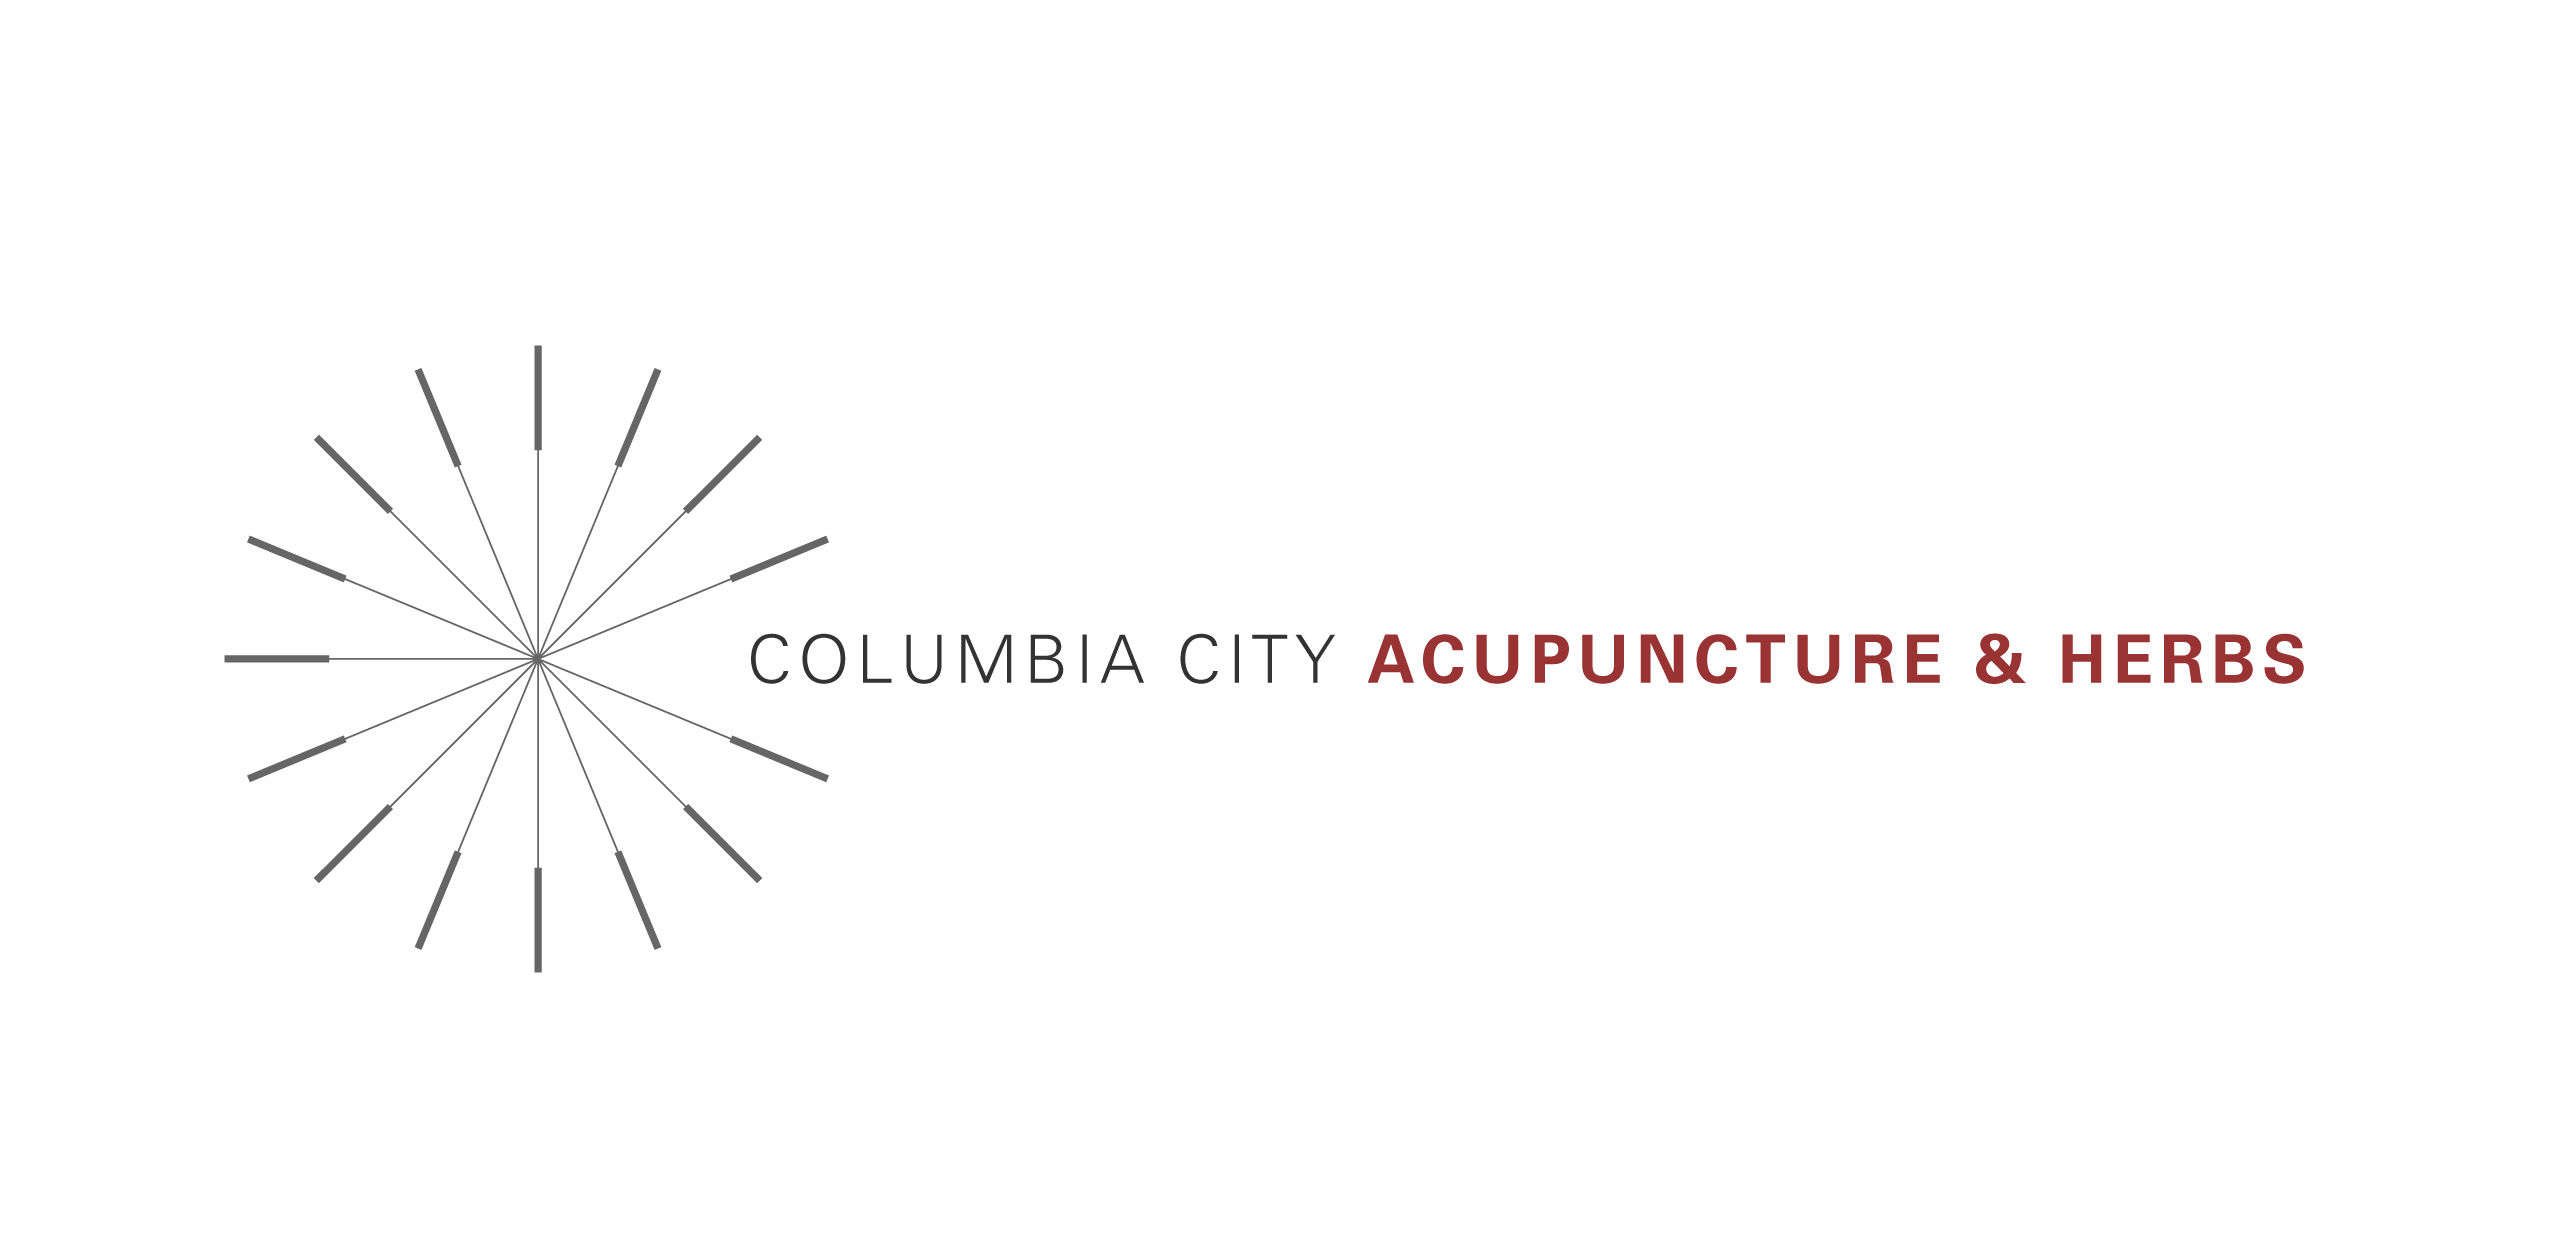 Columbia City Acupuncture and Herbs